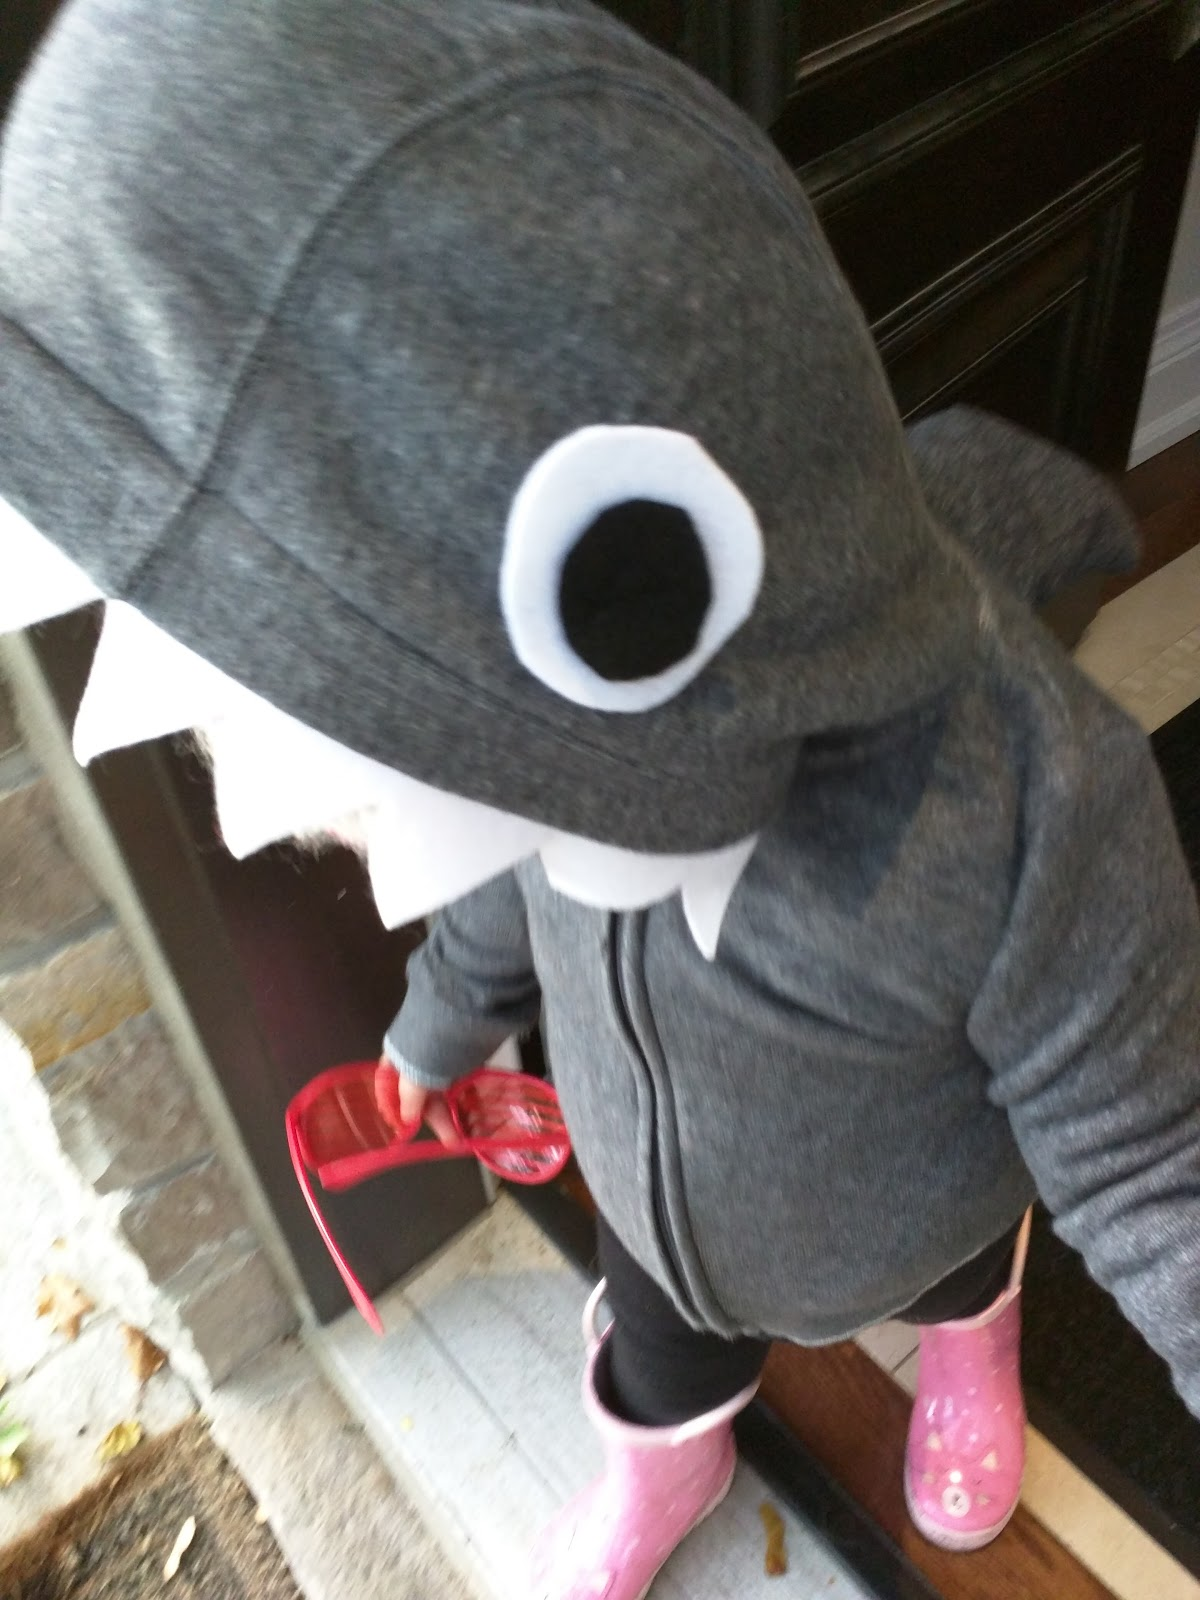 Halloweu0027en is around the corner and I thought Iu0027d share some inspiration for a toddler costume! I always liked Halloweu0027en as a holiday but now I like it ... & tarts u0026 crafts: DIY toddler shark costume